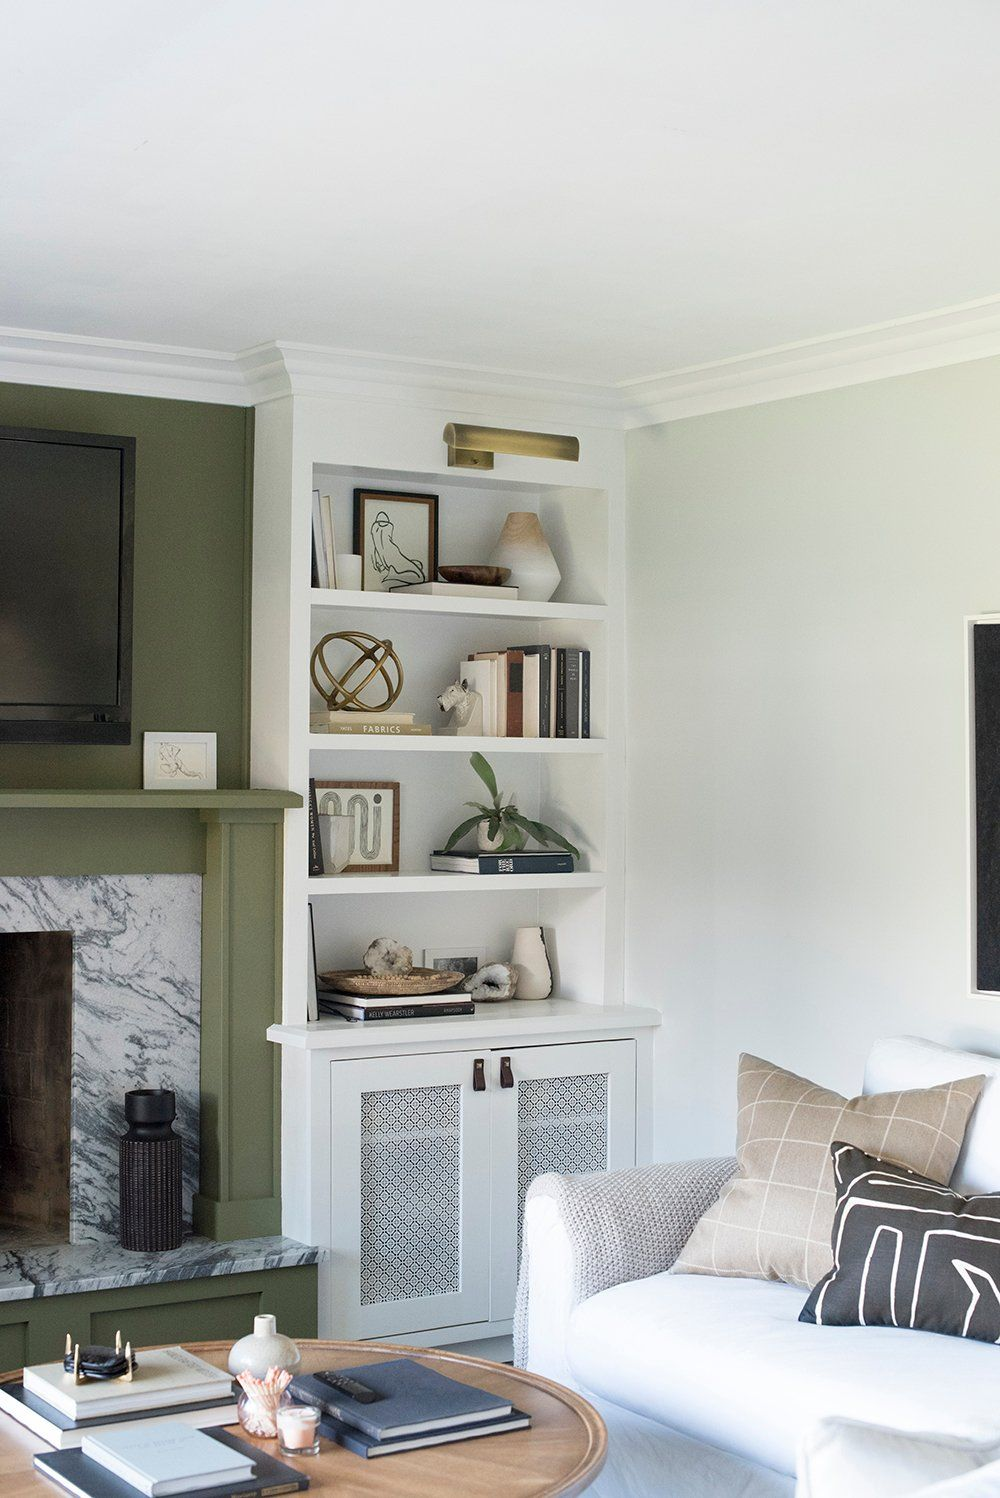 My Living Room Palette Paint Colors Room For Tuesday Blog Color Palette Living Room Living Room Color Schemes Living Room Color #paint #my #living #room